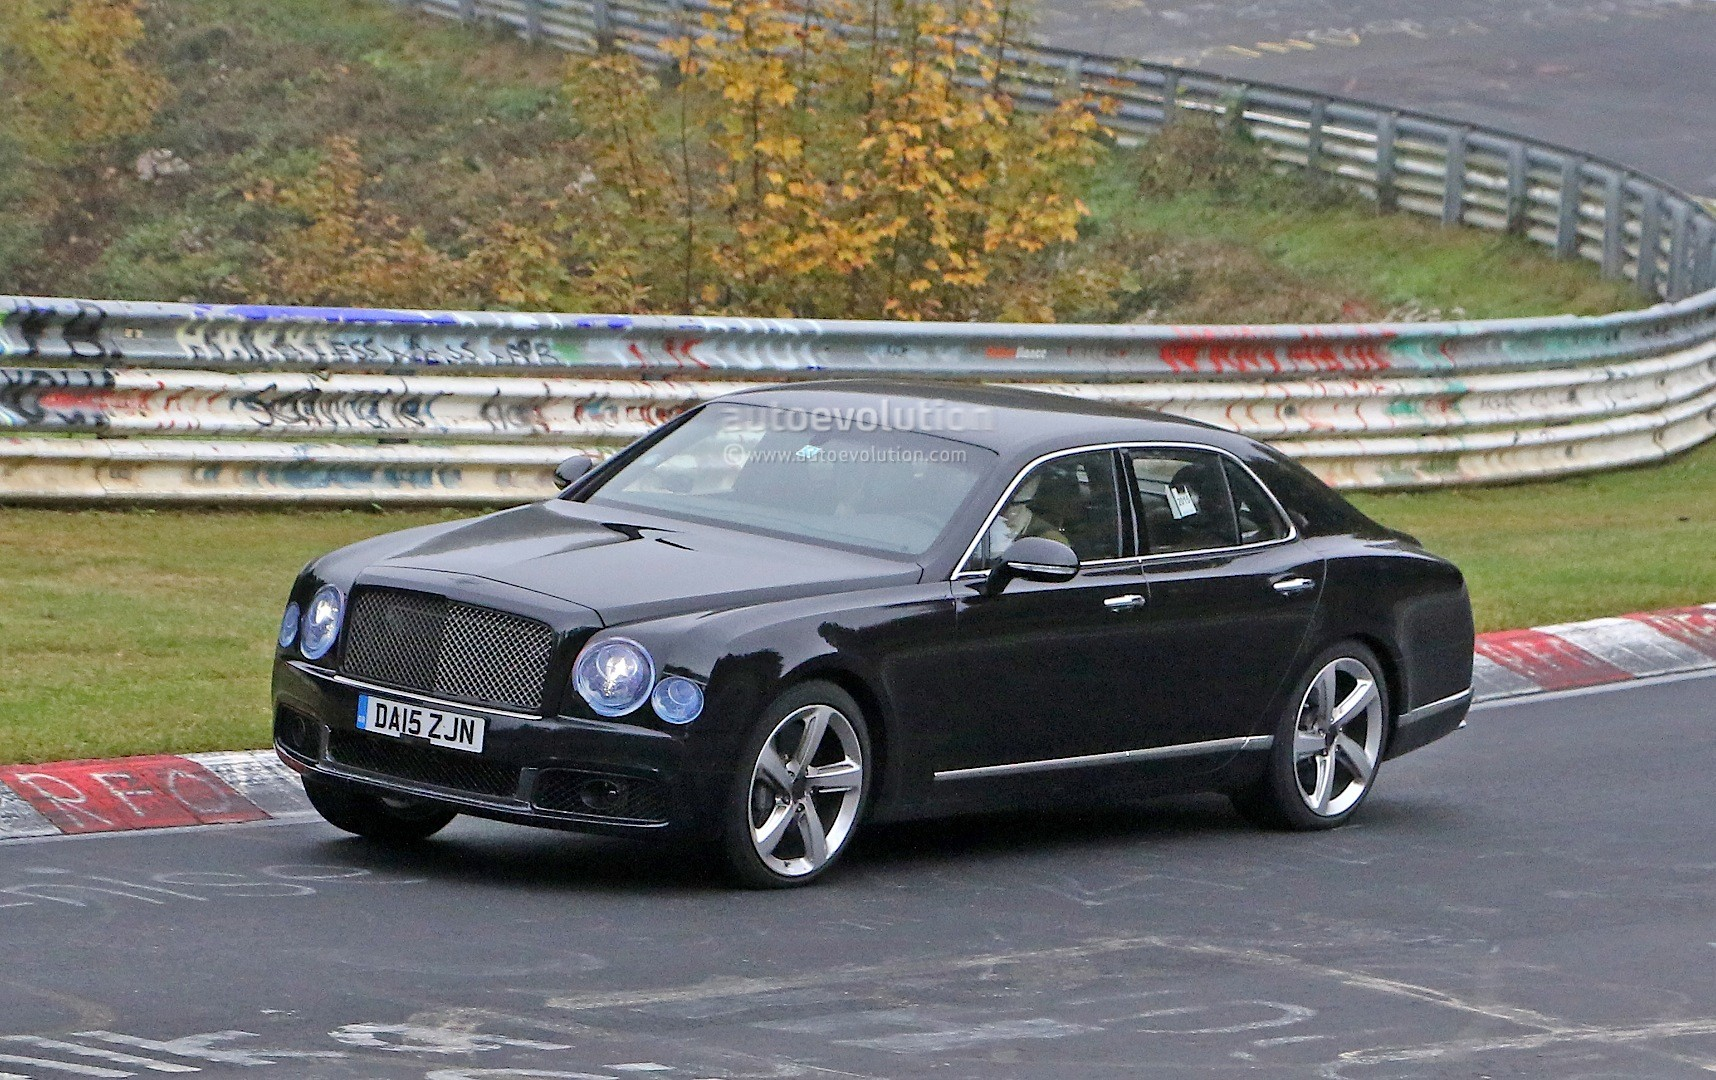 2017 bentley mulsanne spyshots reveal long wheelbase model arnage 2017 bentley mulsanne spyshots vanachro Image collections